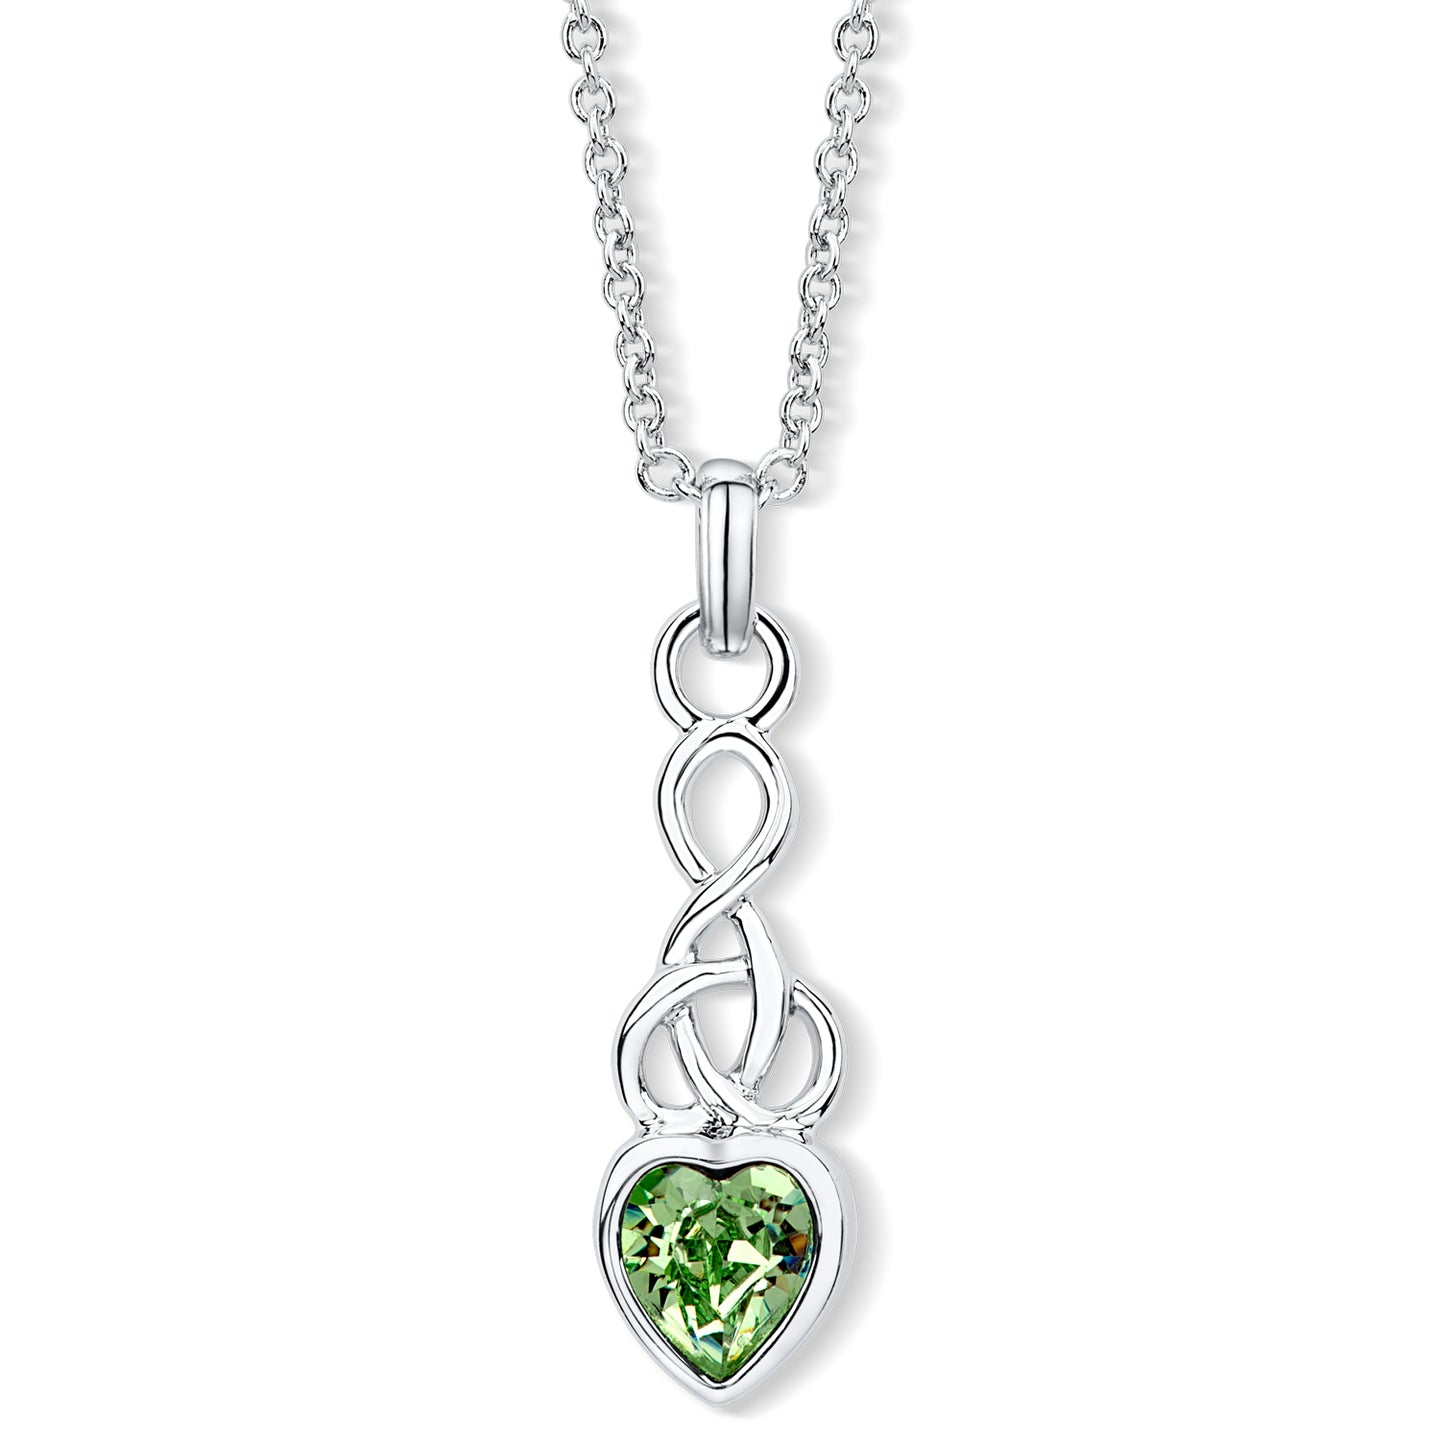 Celtic Heart Pendant with Peridot Crystal